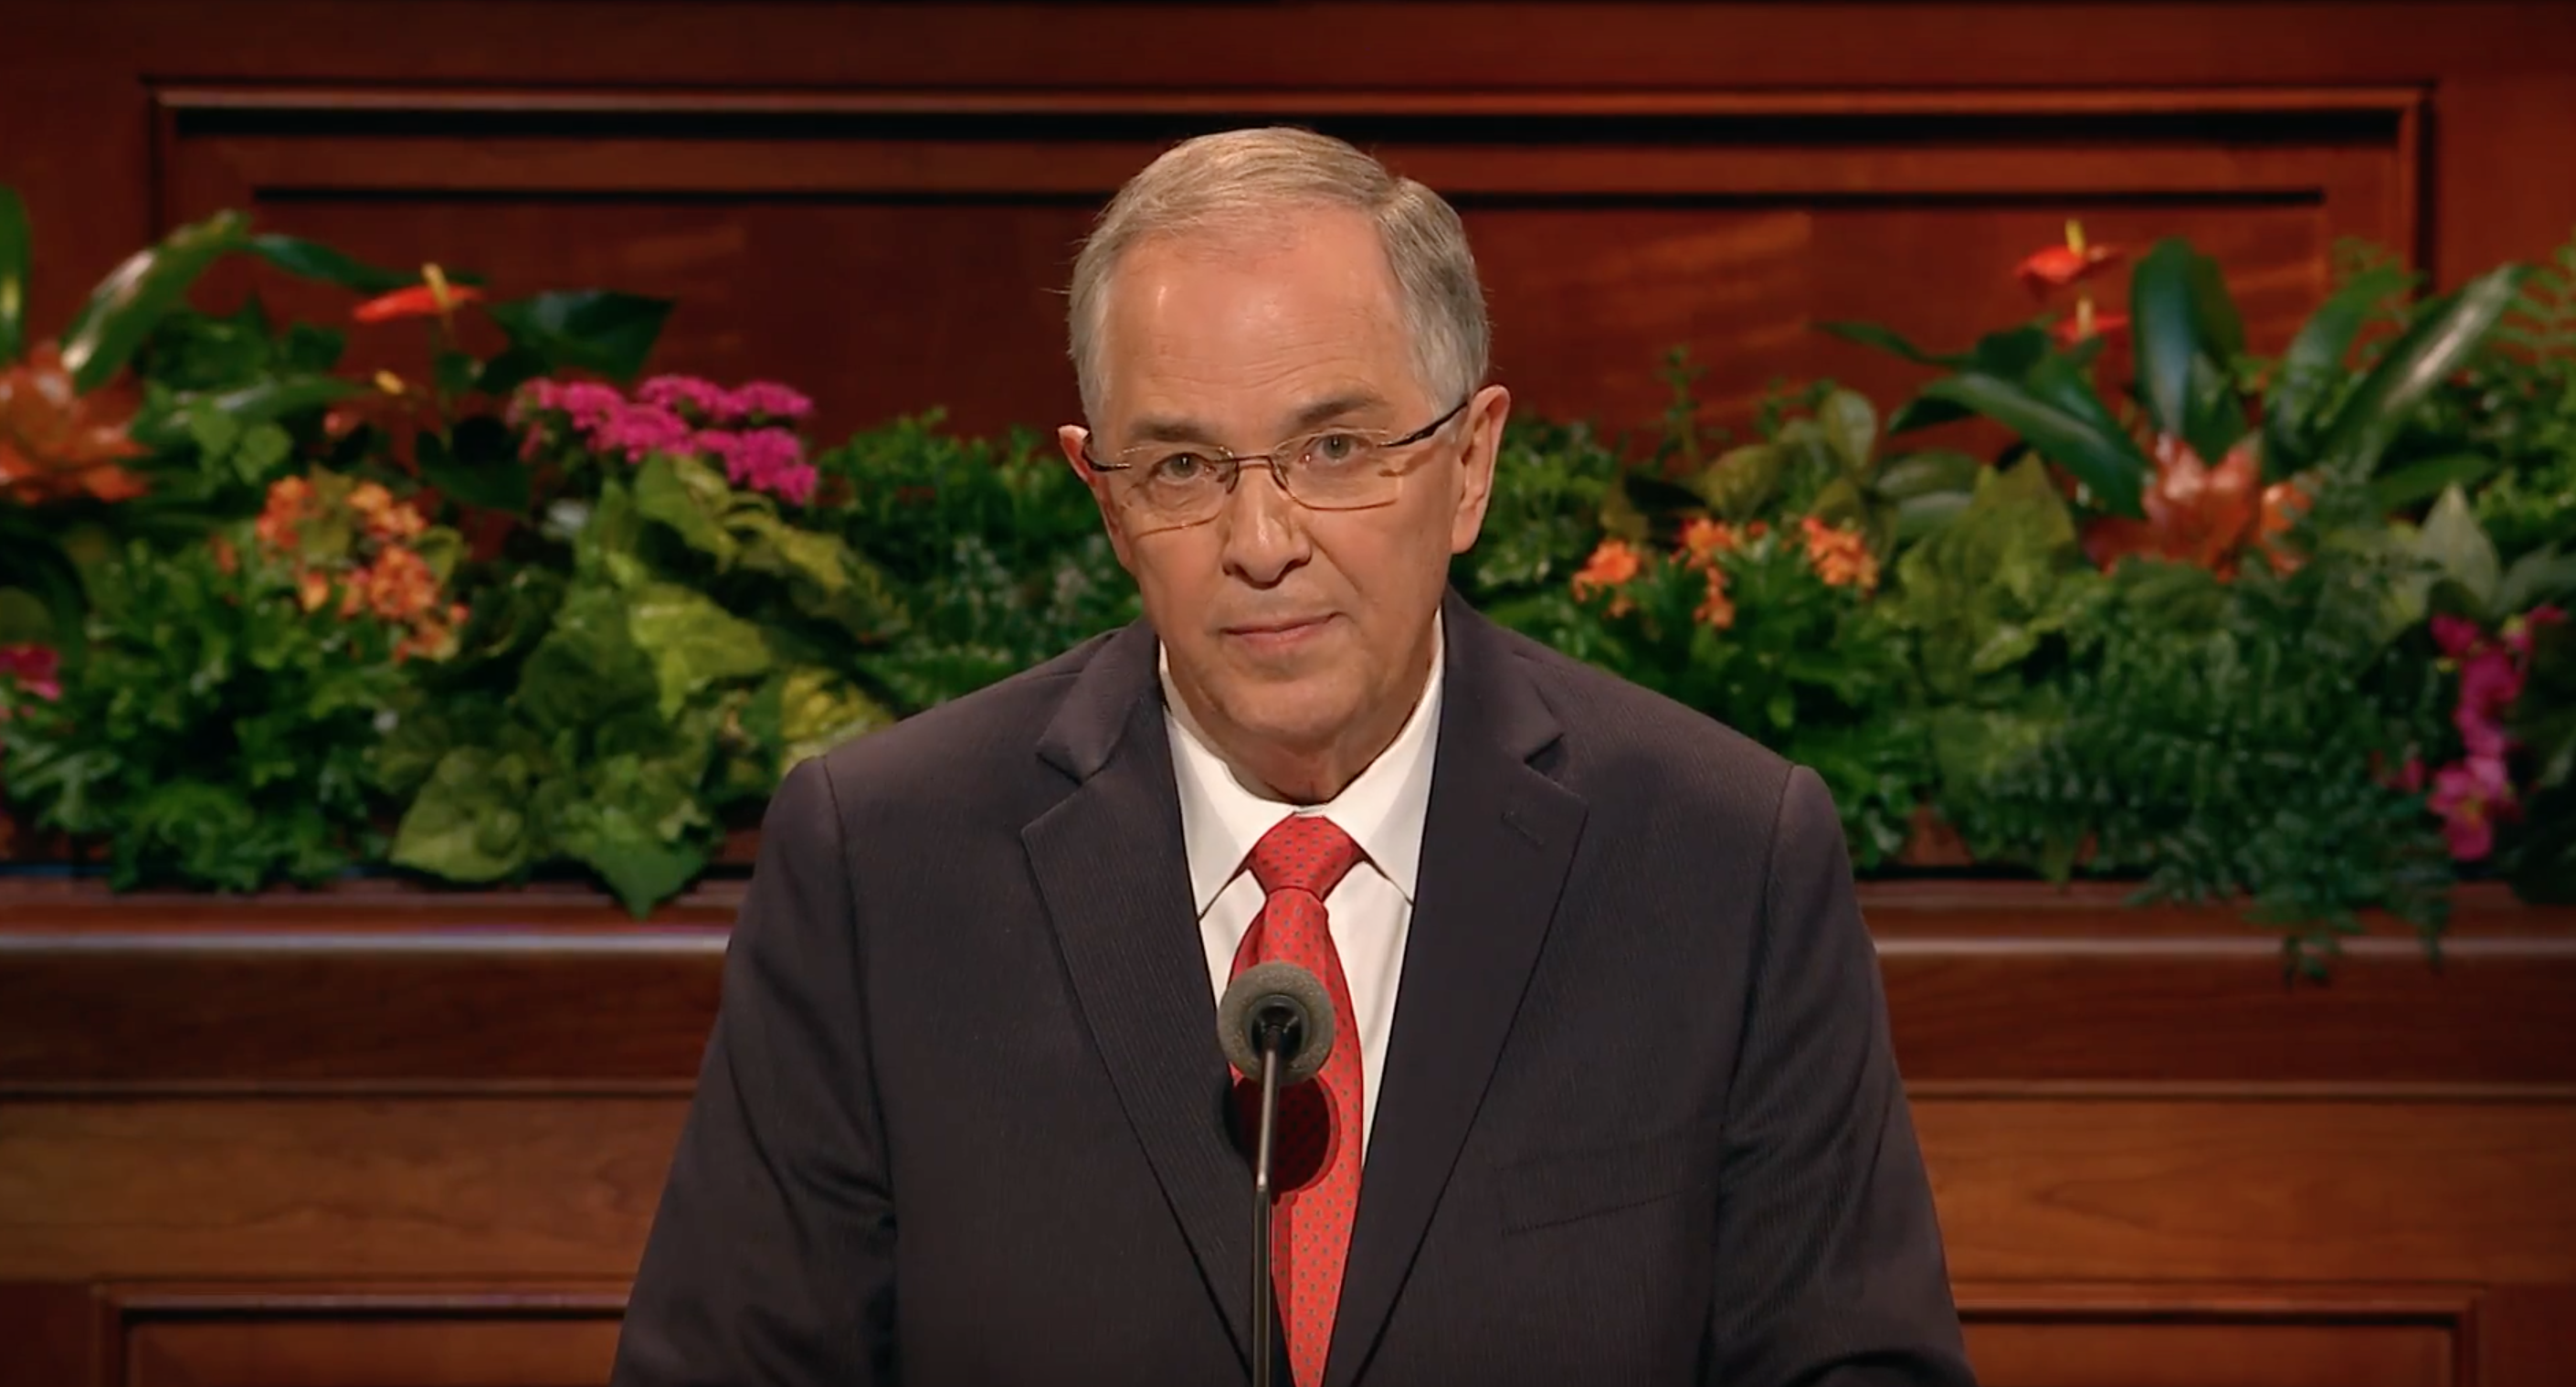 Elder Neil L. Andersen gives an address during the Sunday morning session of October 2018 general conference.